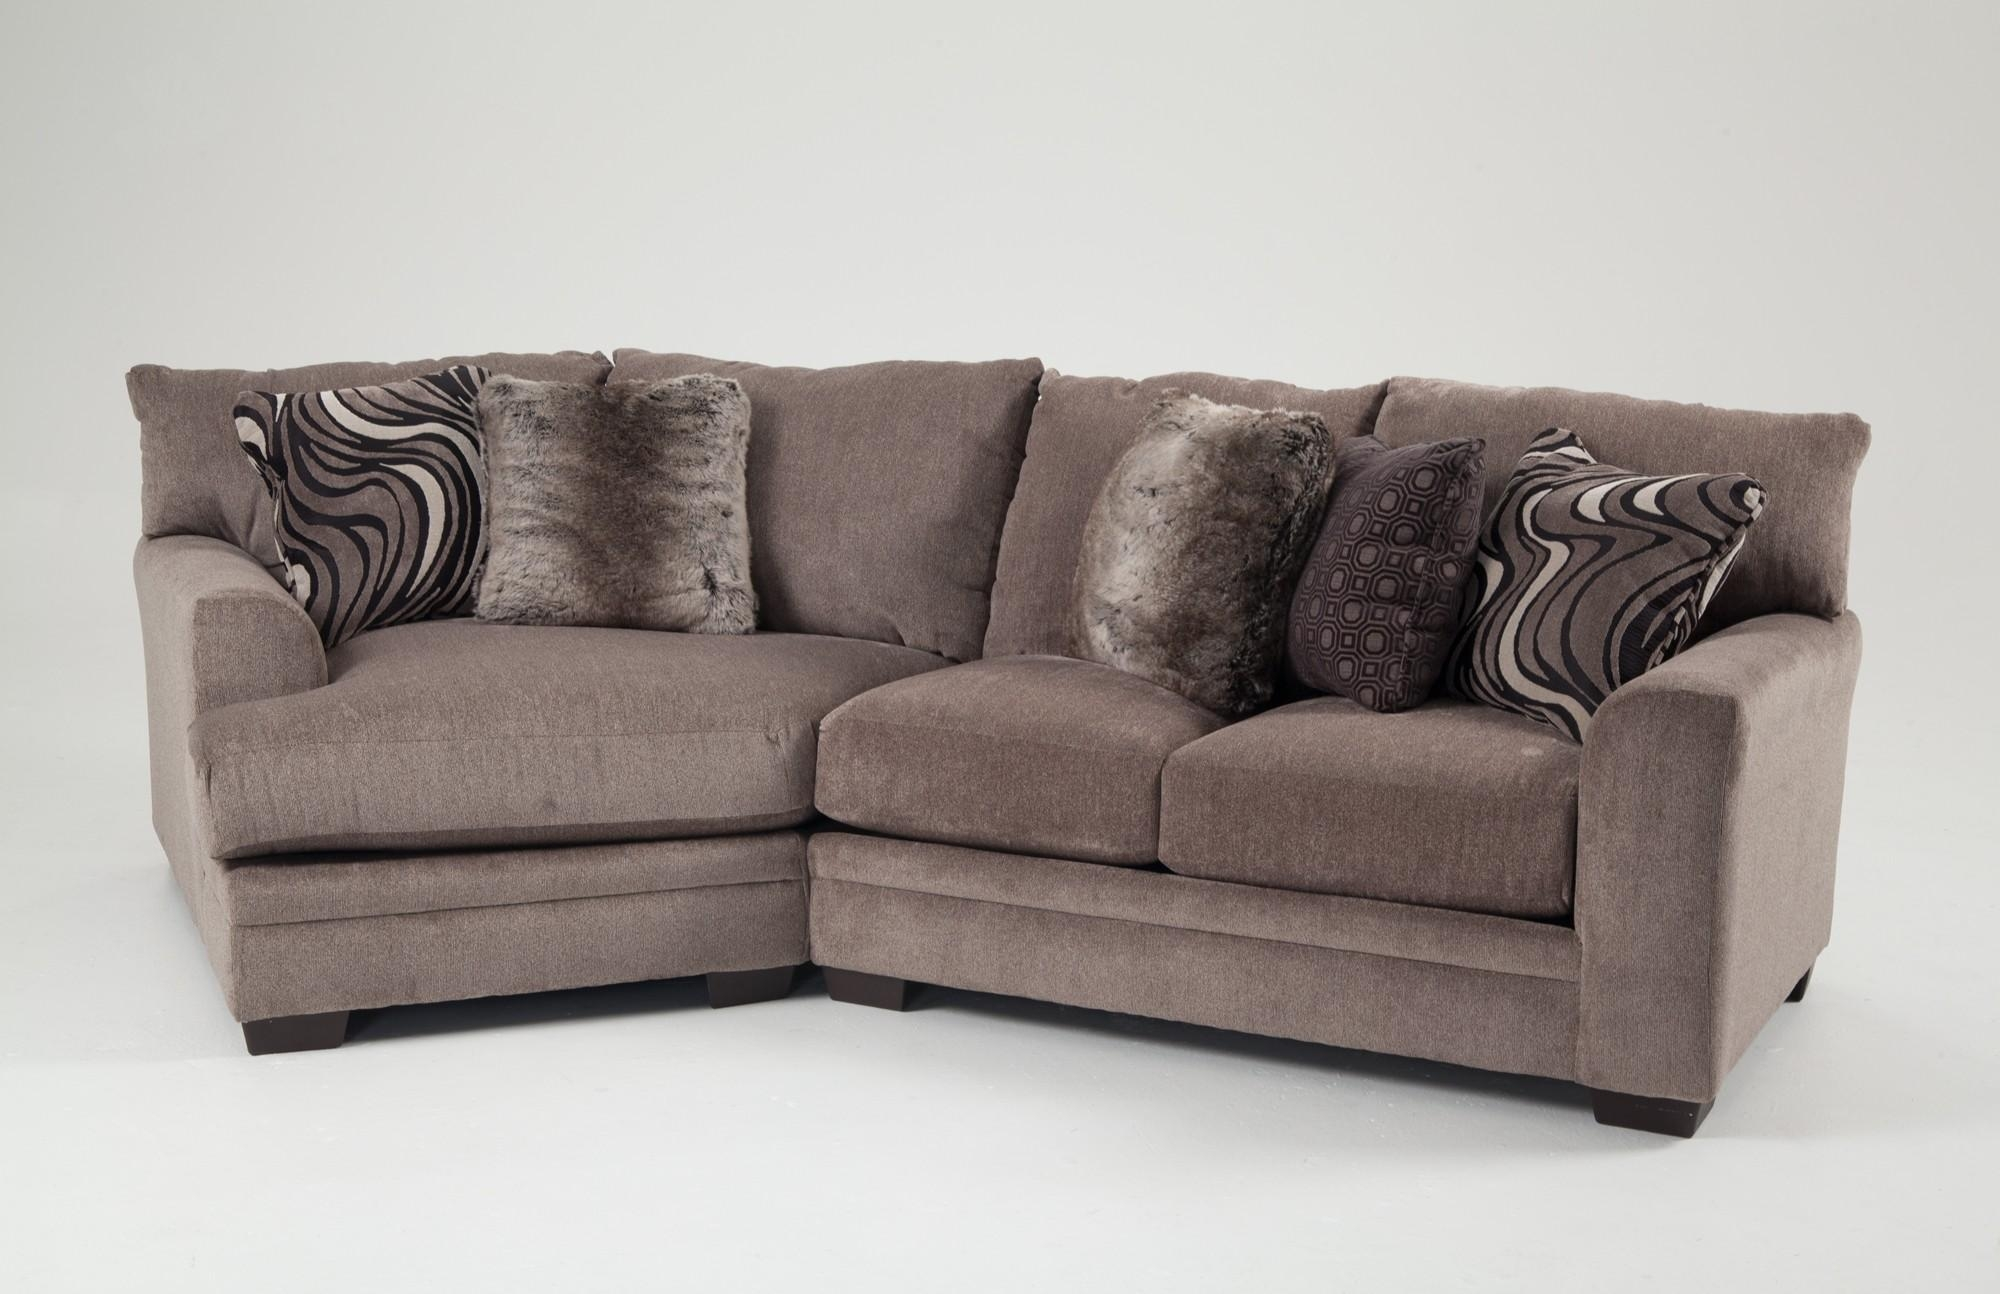 Luxe 2 Piece Sectional With Cuddler | Bob's Discount Furniture With Sectional Cuddler (View 19 of 20)